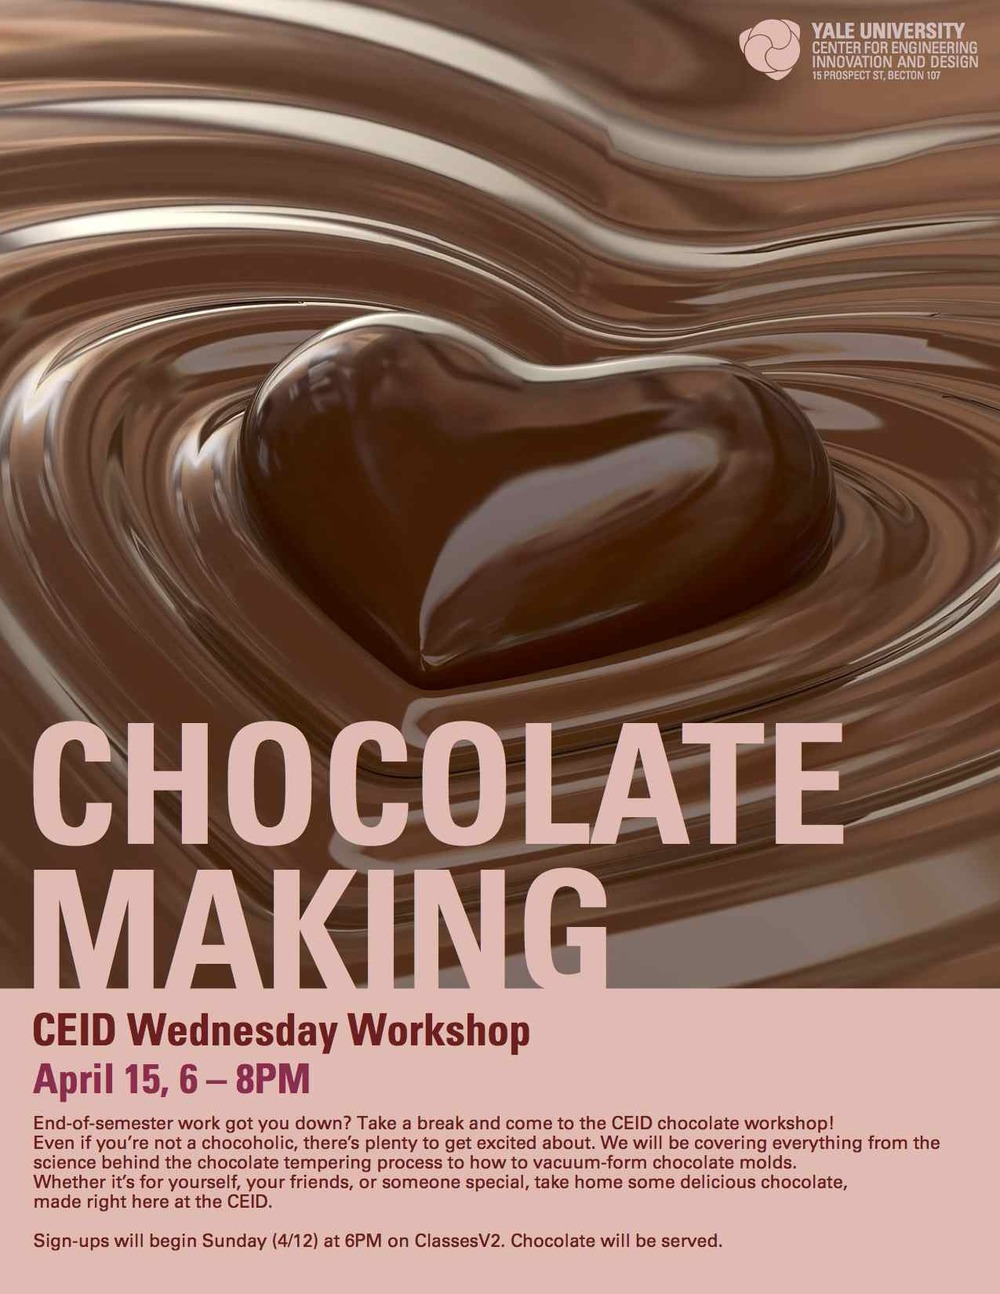 Design poster yourself - Poster Design For Ceid Chocolate Making Workshop